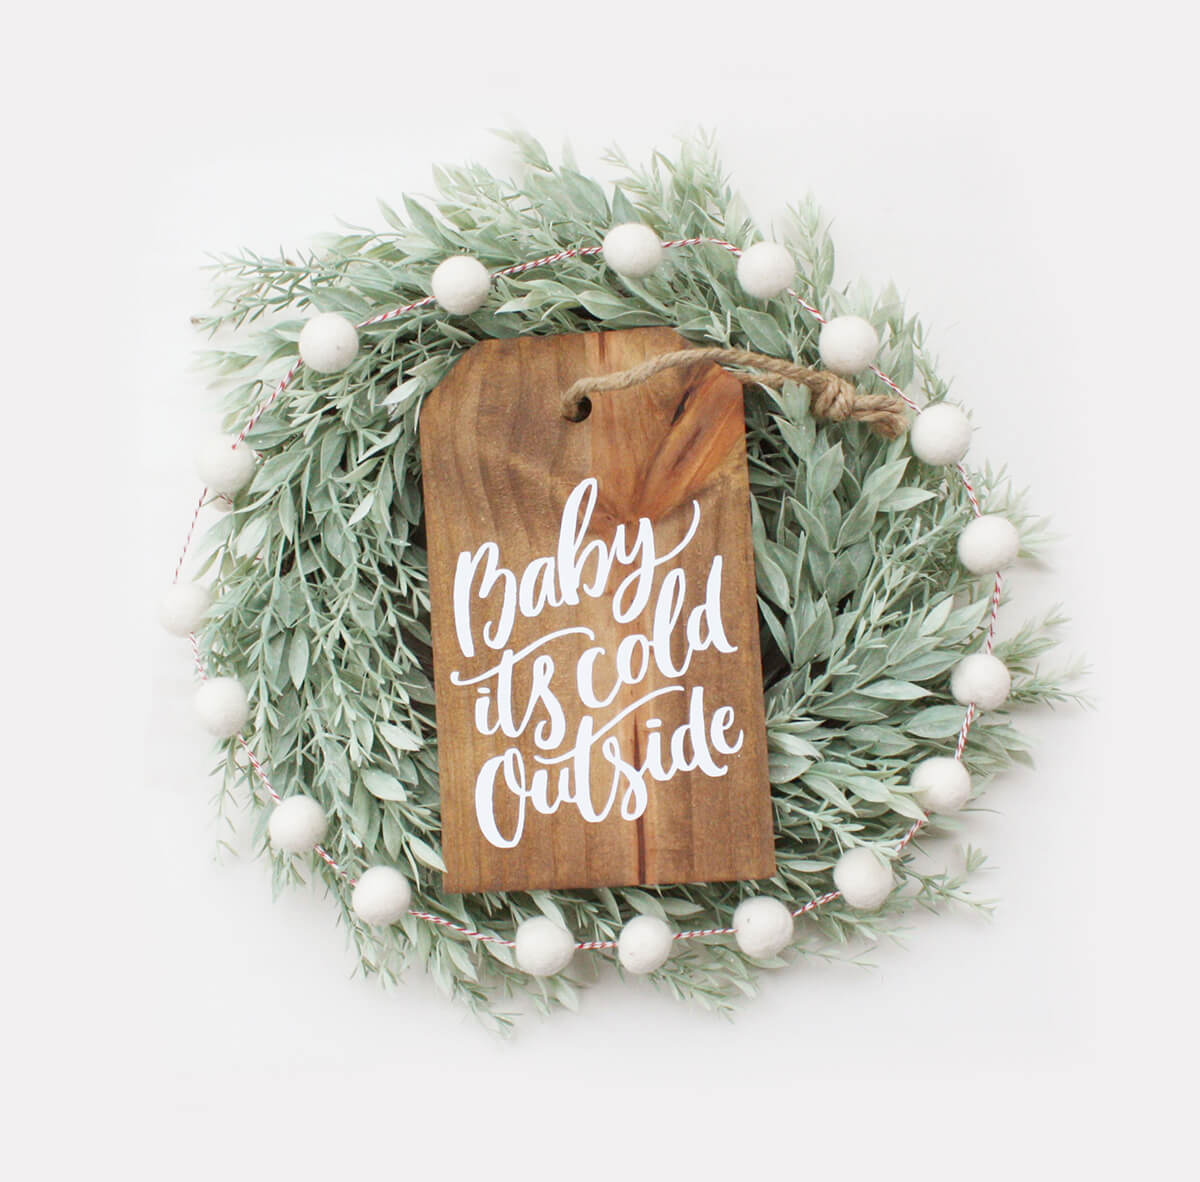 Christmas Sign Christmas Decor Wood Porch Decor Rustic Holiday Sign Baby It/'s Cold Outside Christmas Porch Sign Holiday Wood Sign